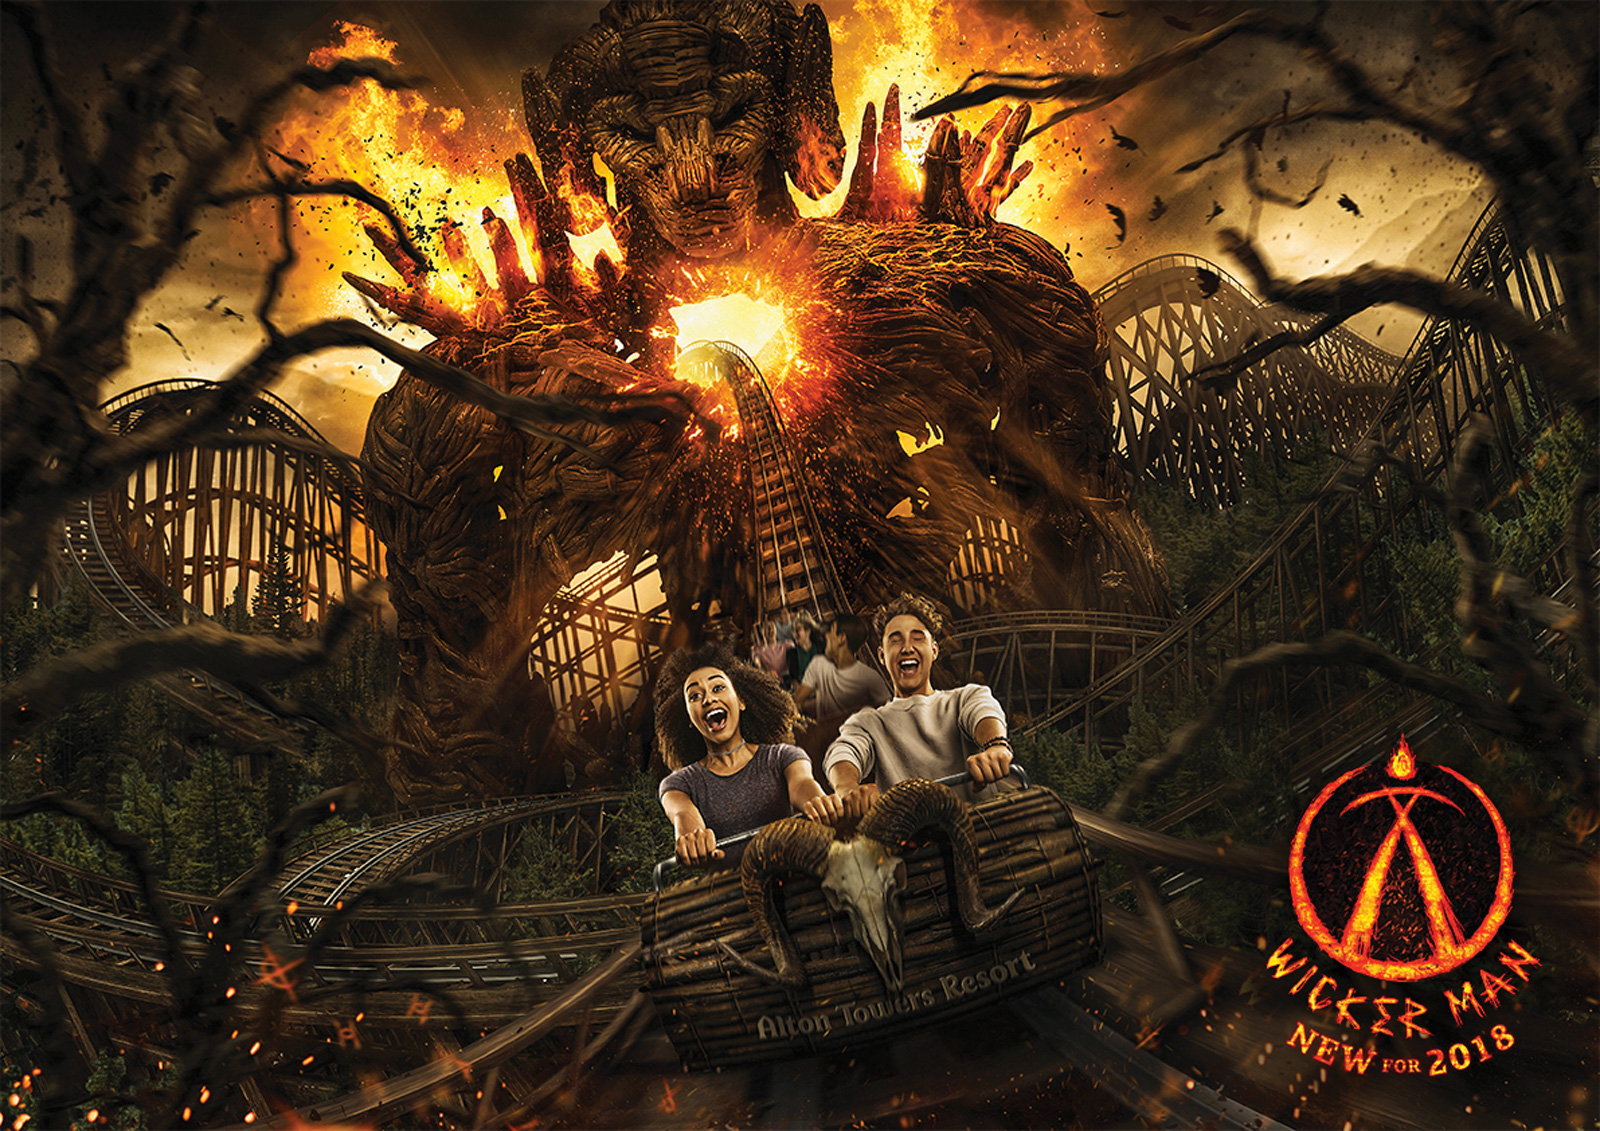 Wicker Man — Alton Towers